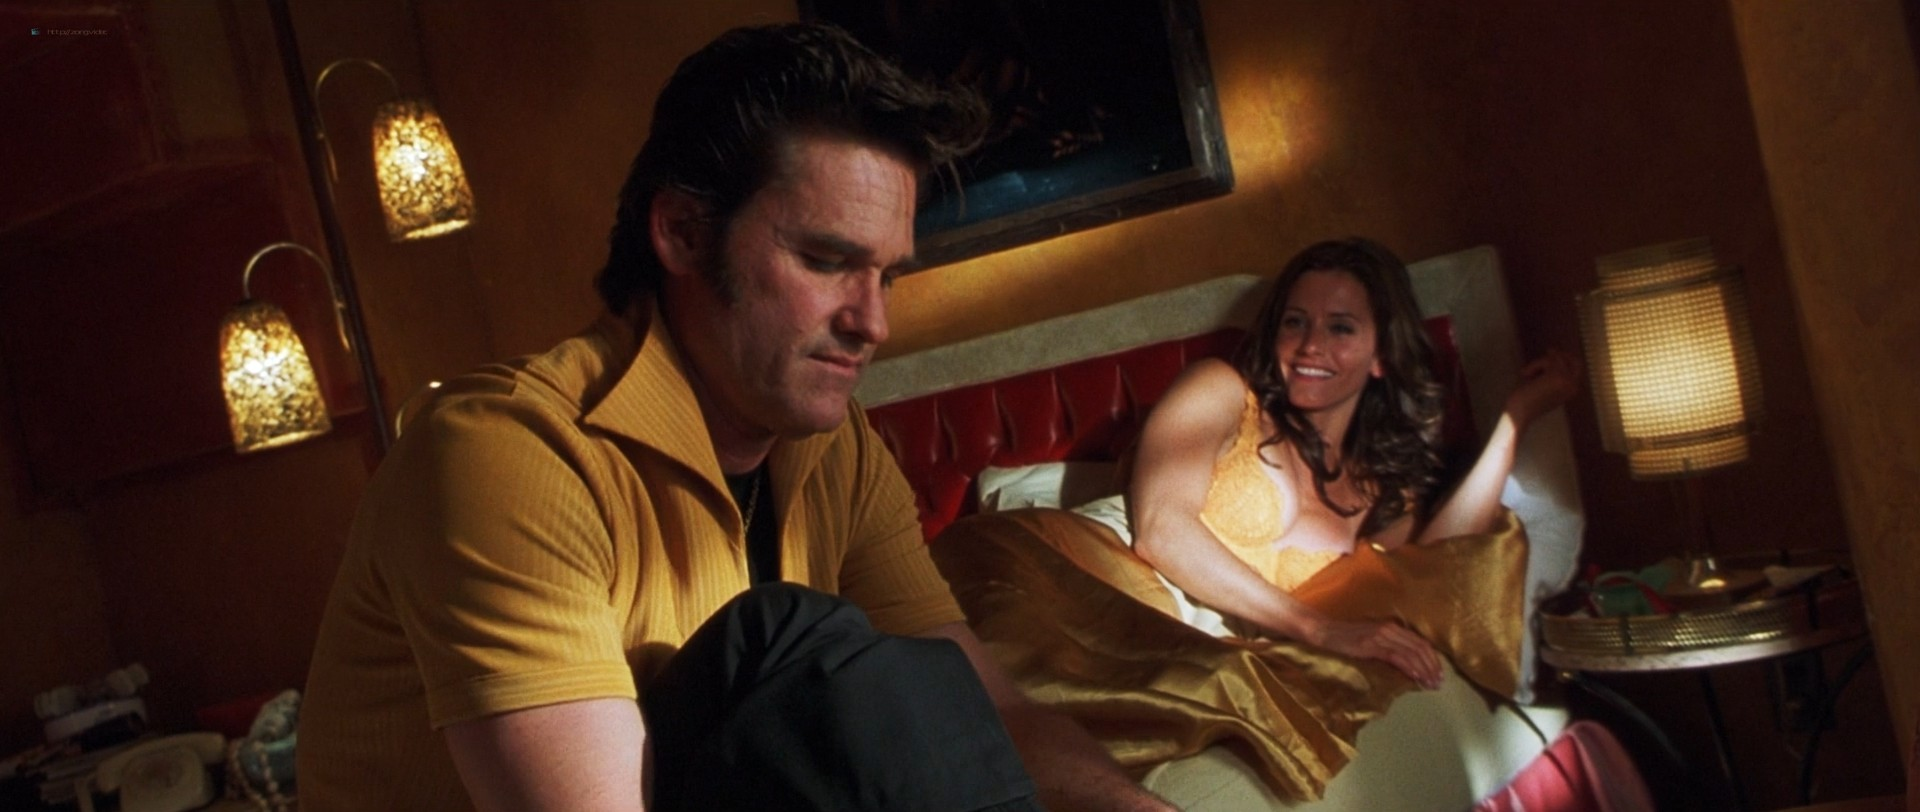 Courtney Cox hot and sex - 3000 Miles to Graceland (2001) HD 1080p BluRay (14)